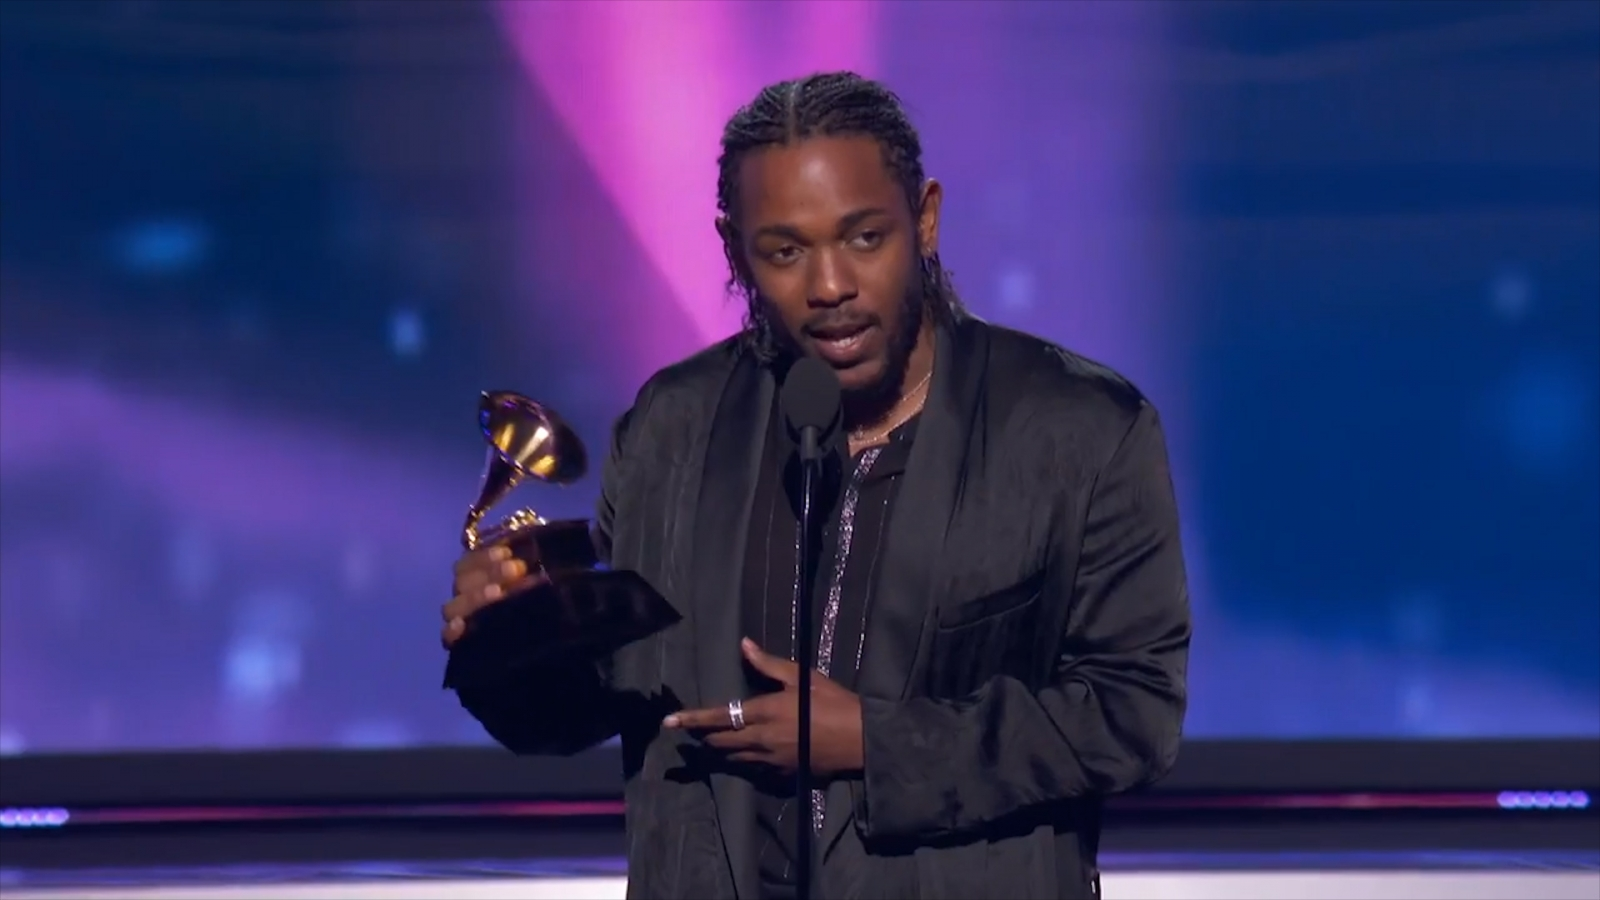 Jay Z 'for president': Kendrick Lamar casts his vote during Best Rap Album speech at 2018 Grammys